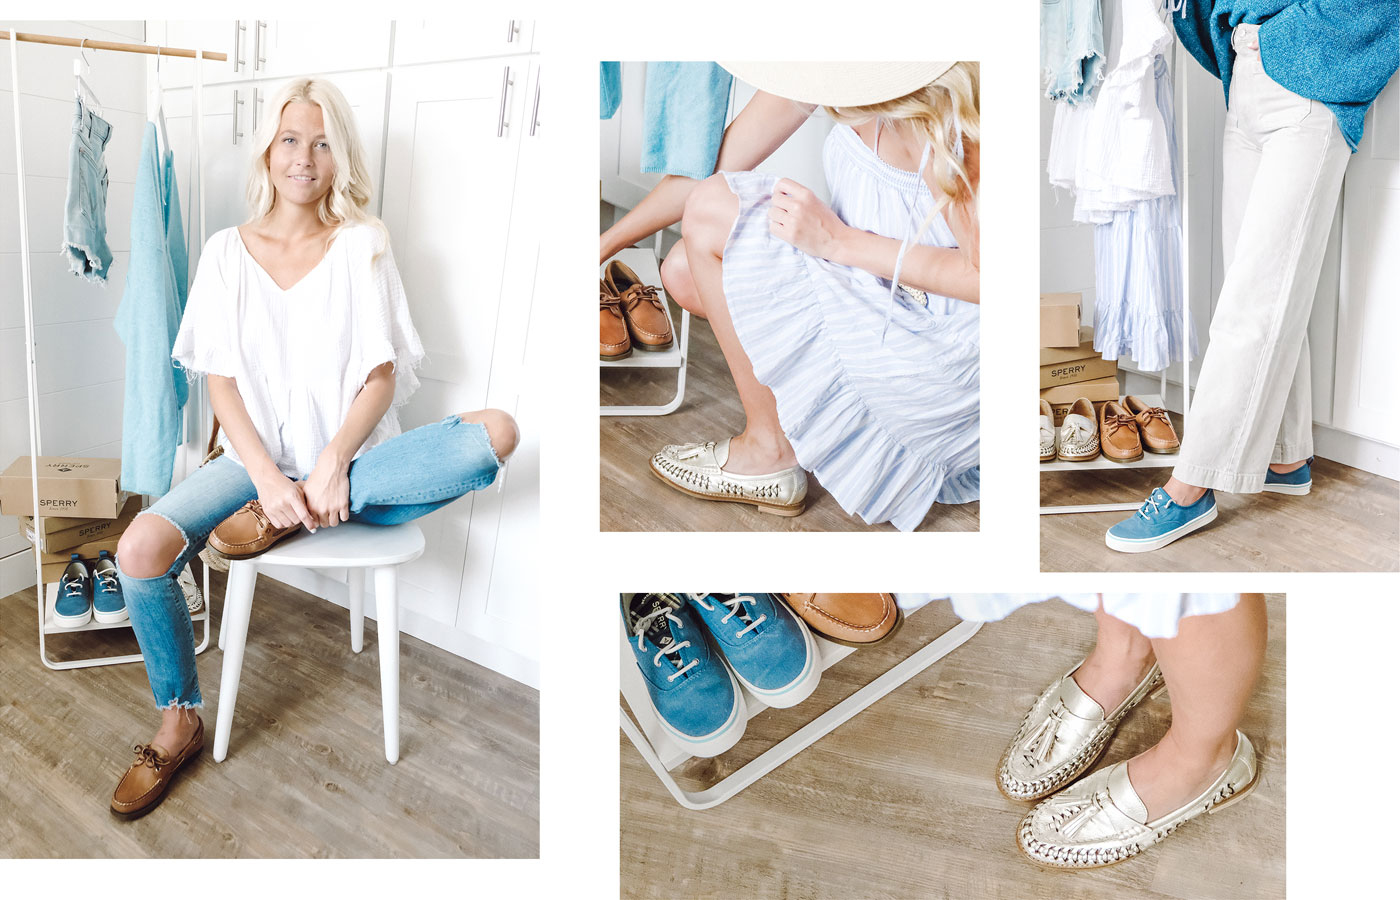 A gallery of Sperry Influencer Molly Hogan, wearing several Sperry shoe styles.